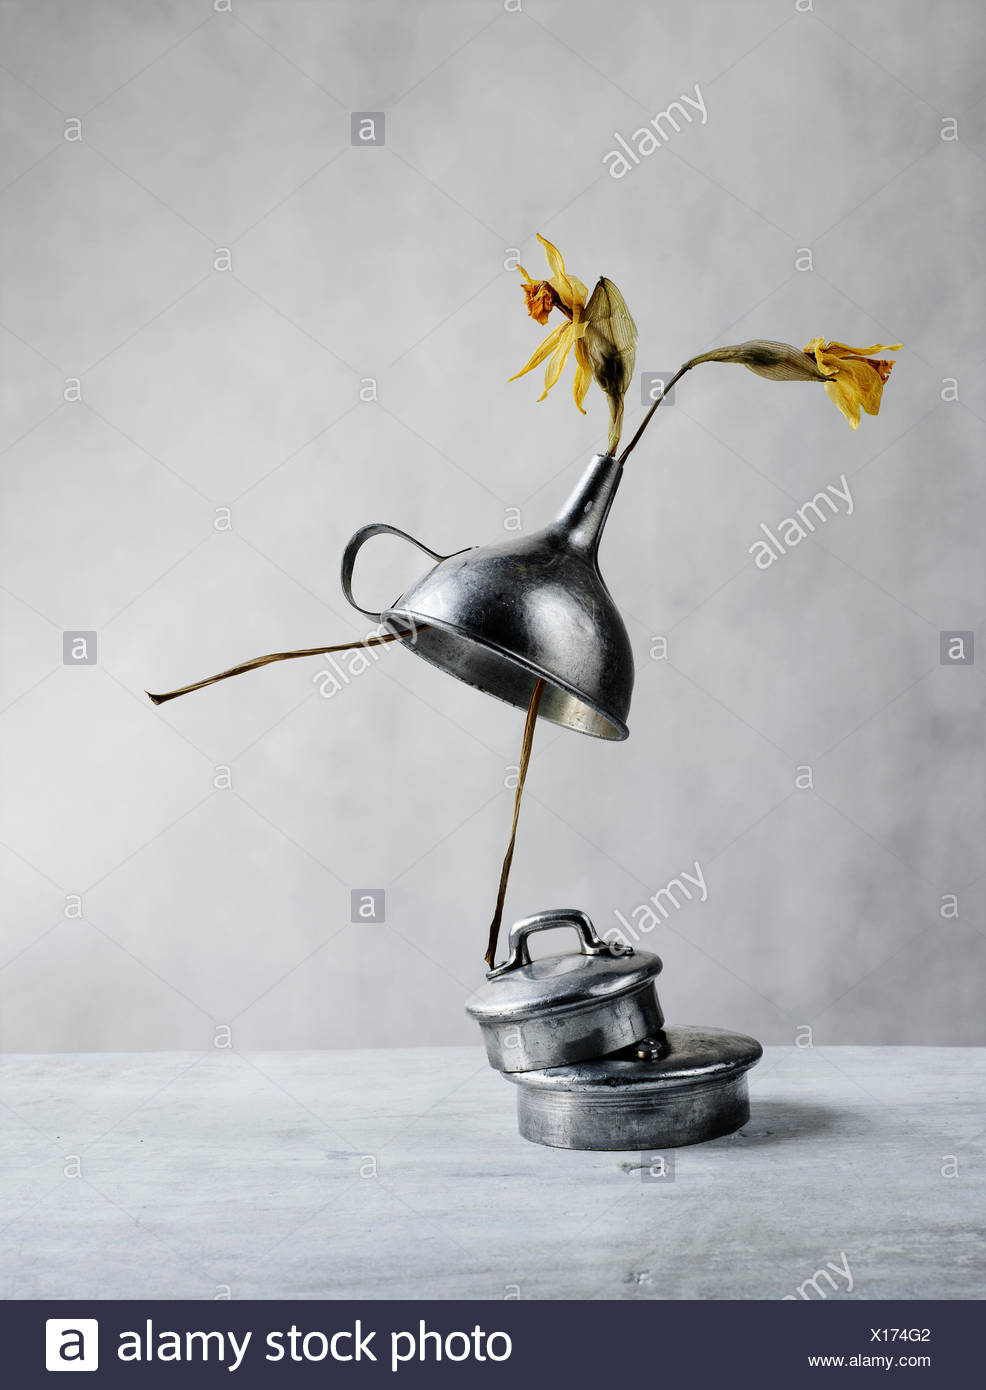 The Dancer - Still Life with Tin Kitchen Utensils and Withered Tulips - Stock Image